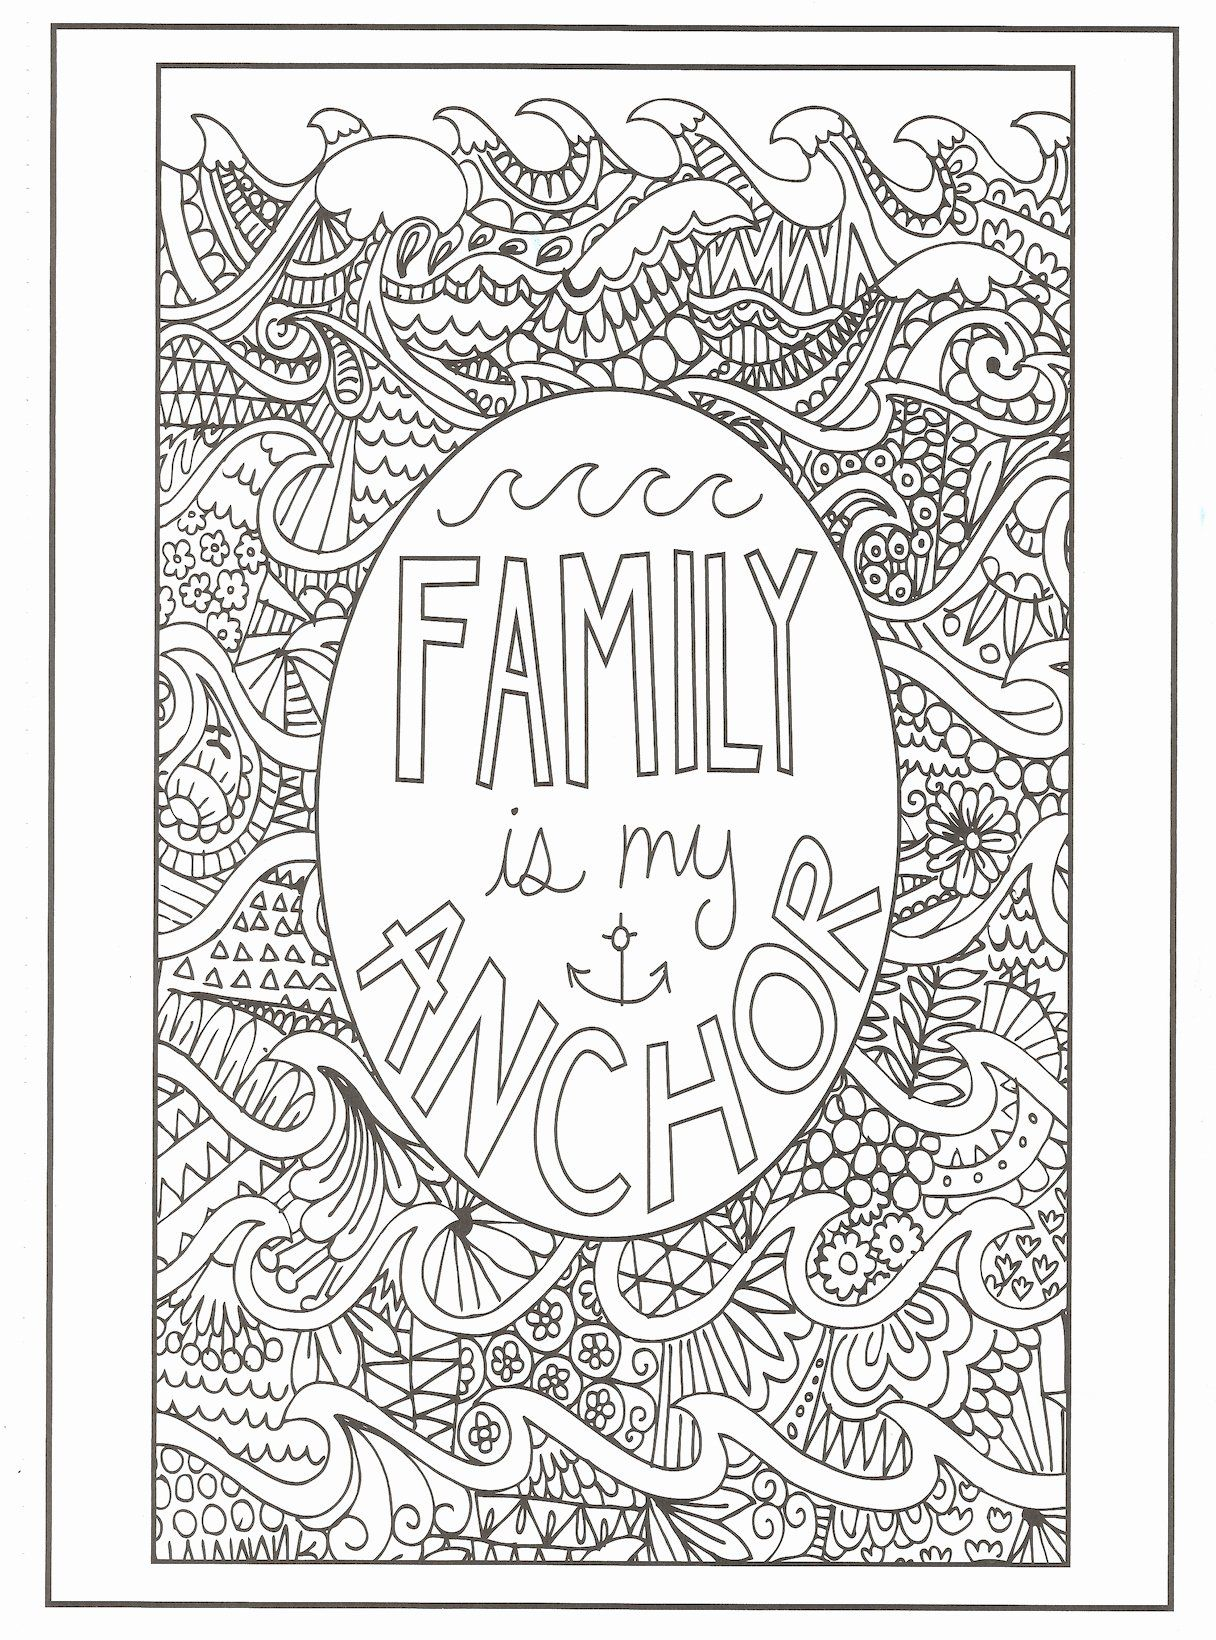 Timeless Creations Coloring Book Unique Positive